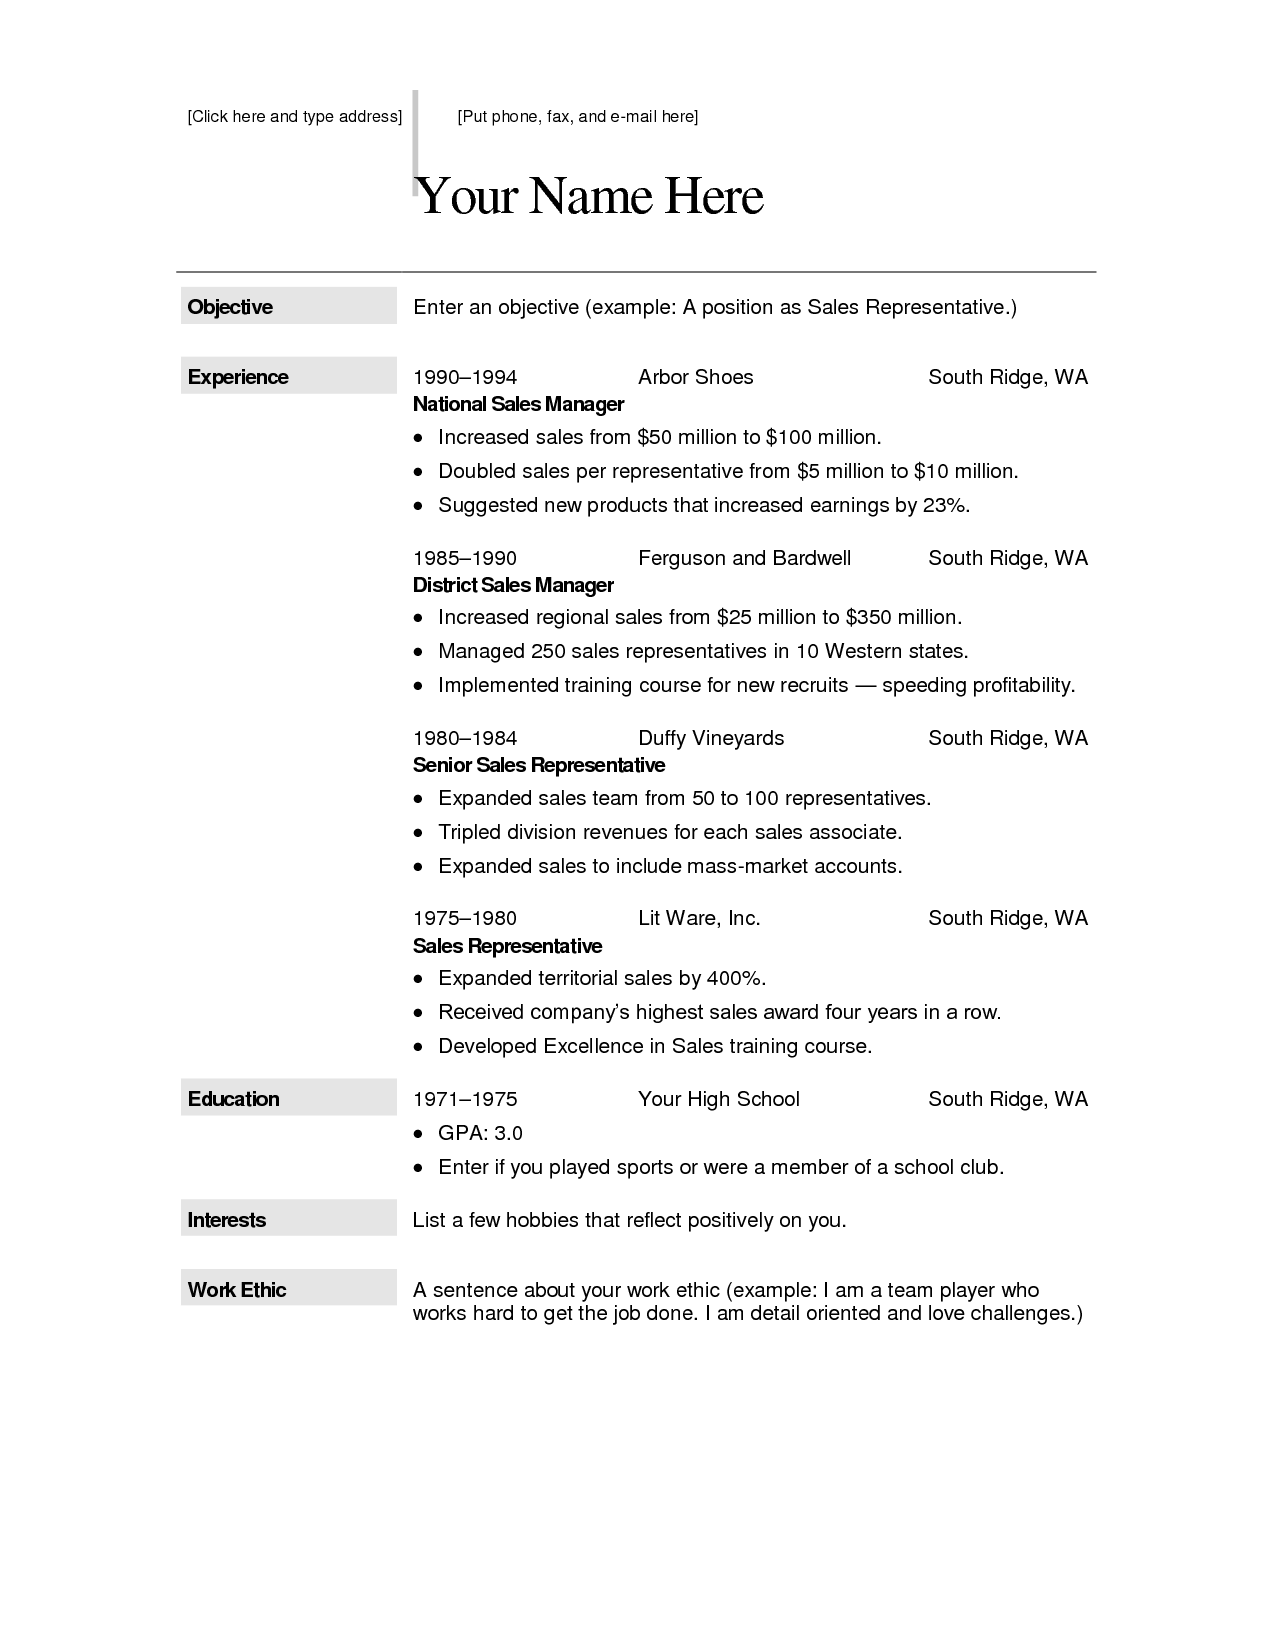 Free Resume Template For Mac Free Creative Resume Templates For Macfree Creative Resume